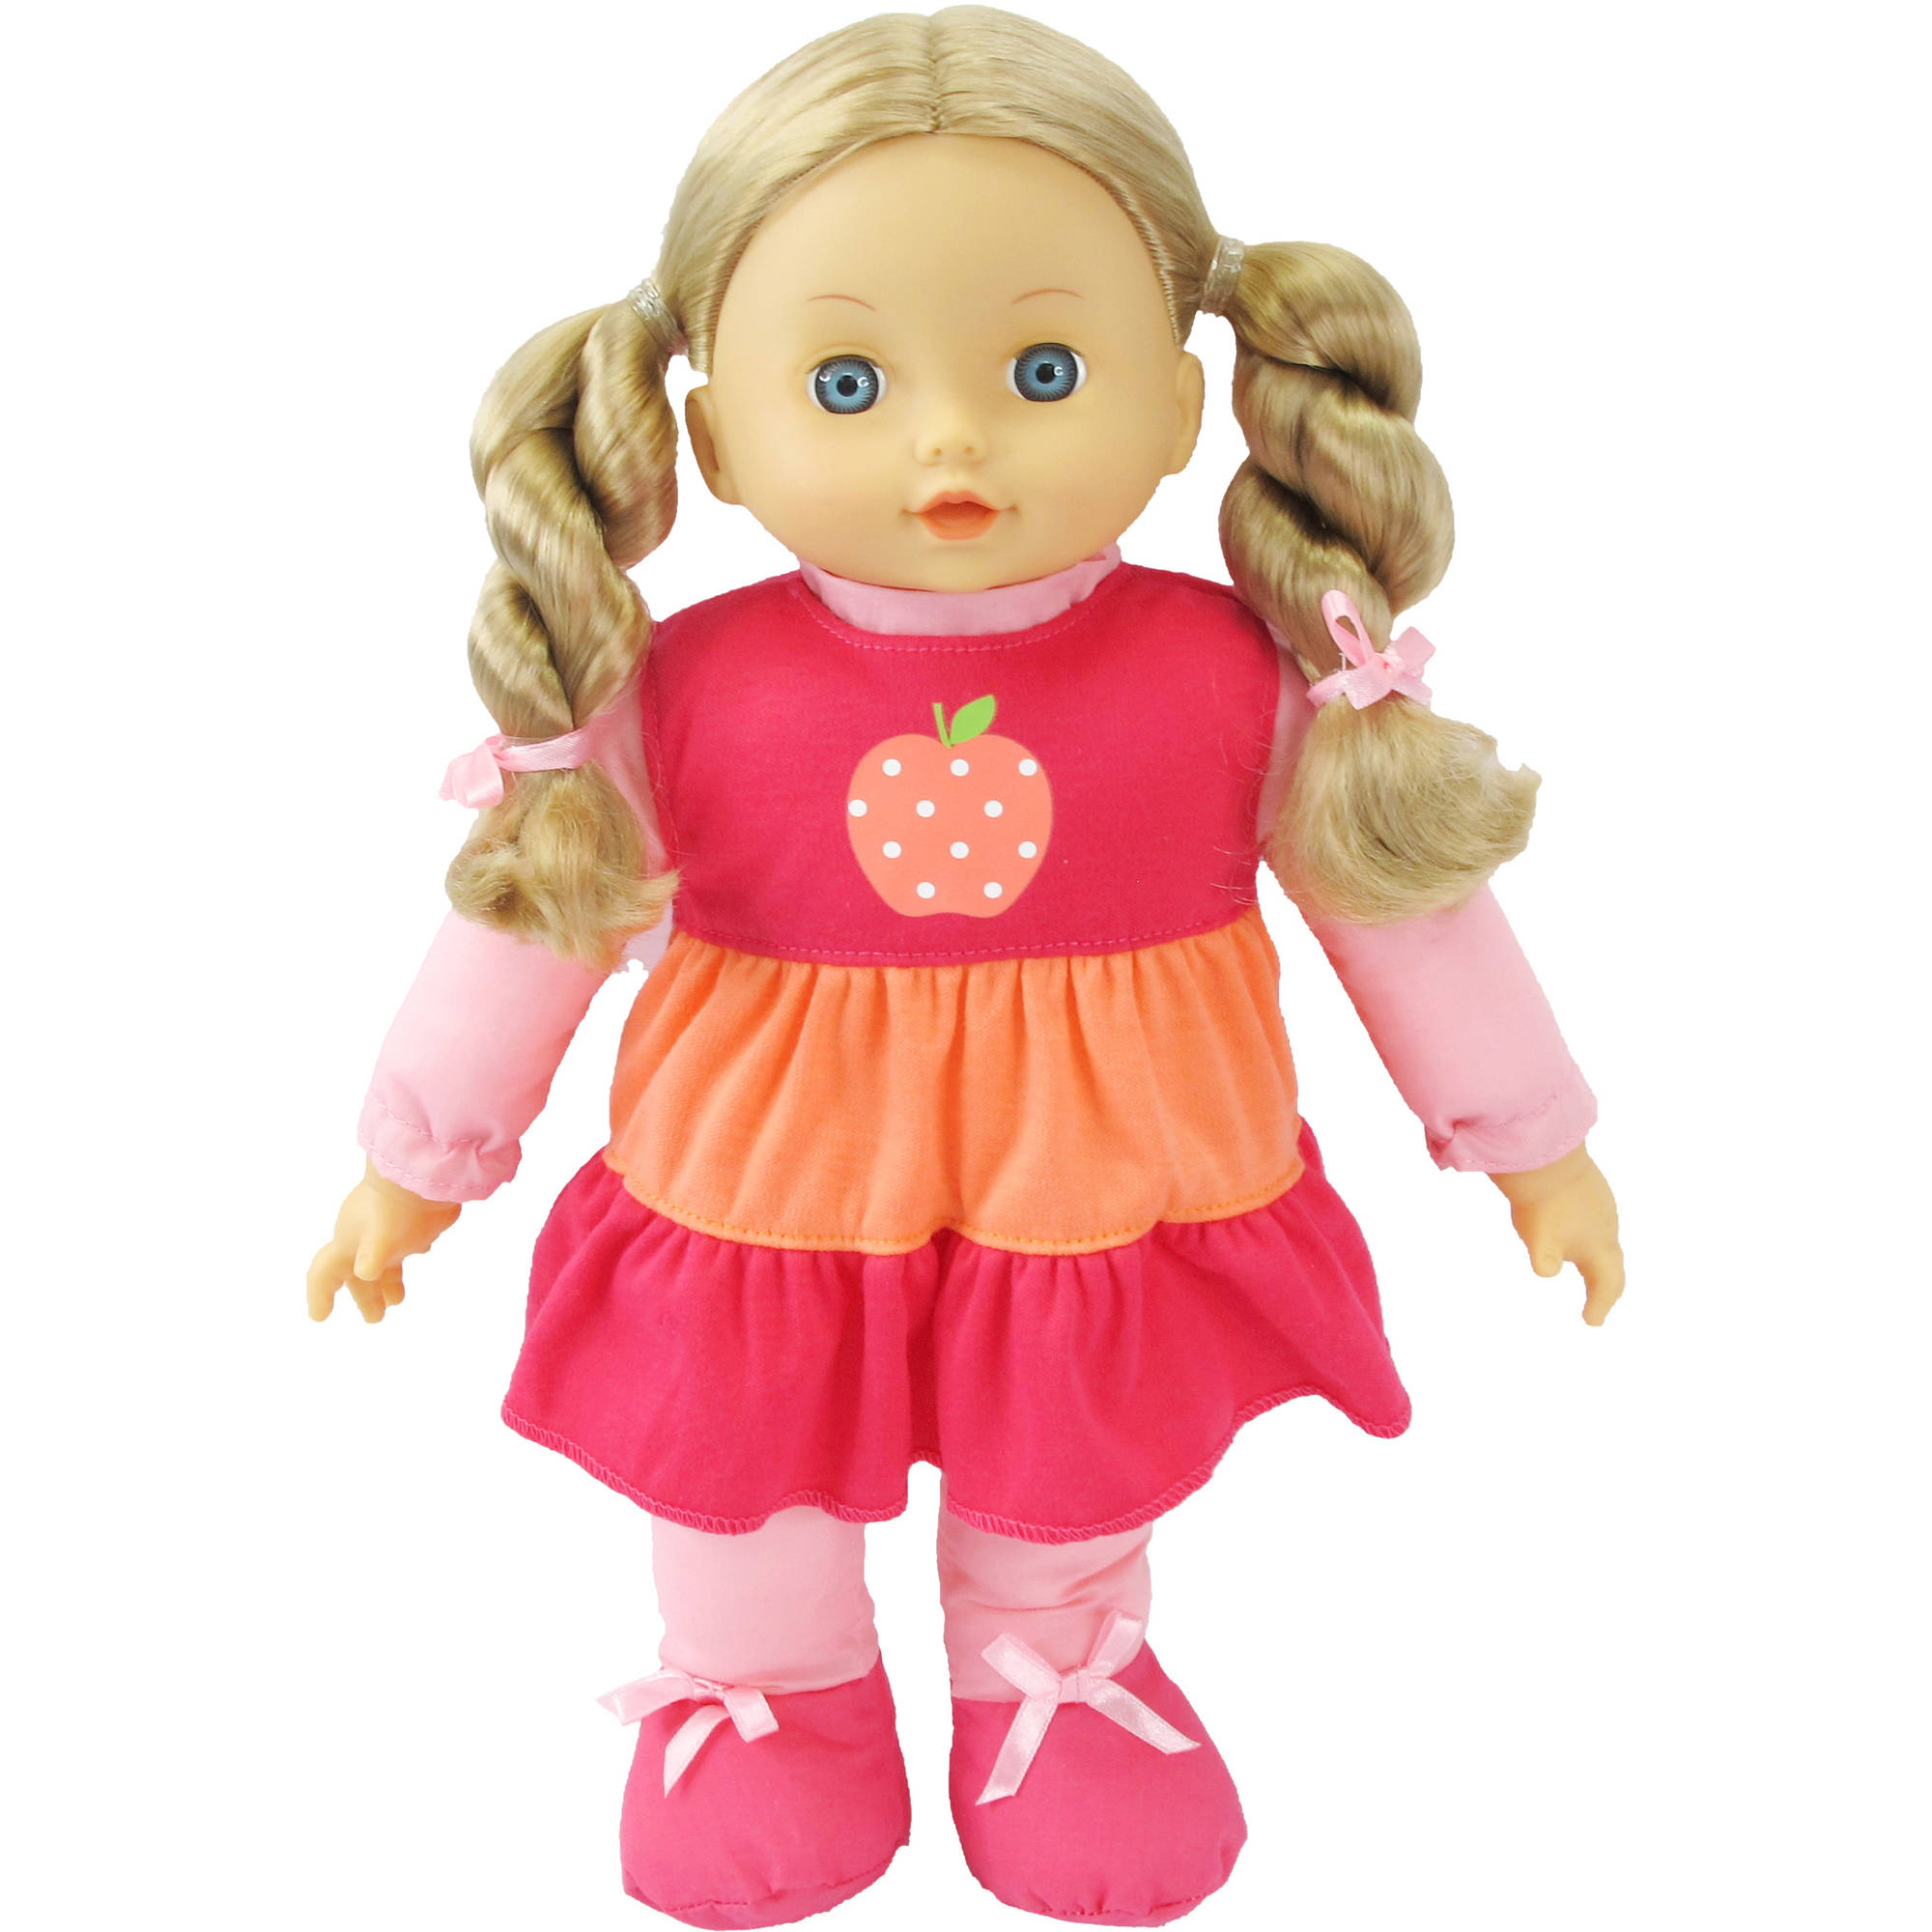 My Sweet Life Toddler Doll, Caucasian with Pink Outfit